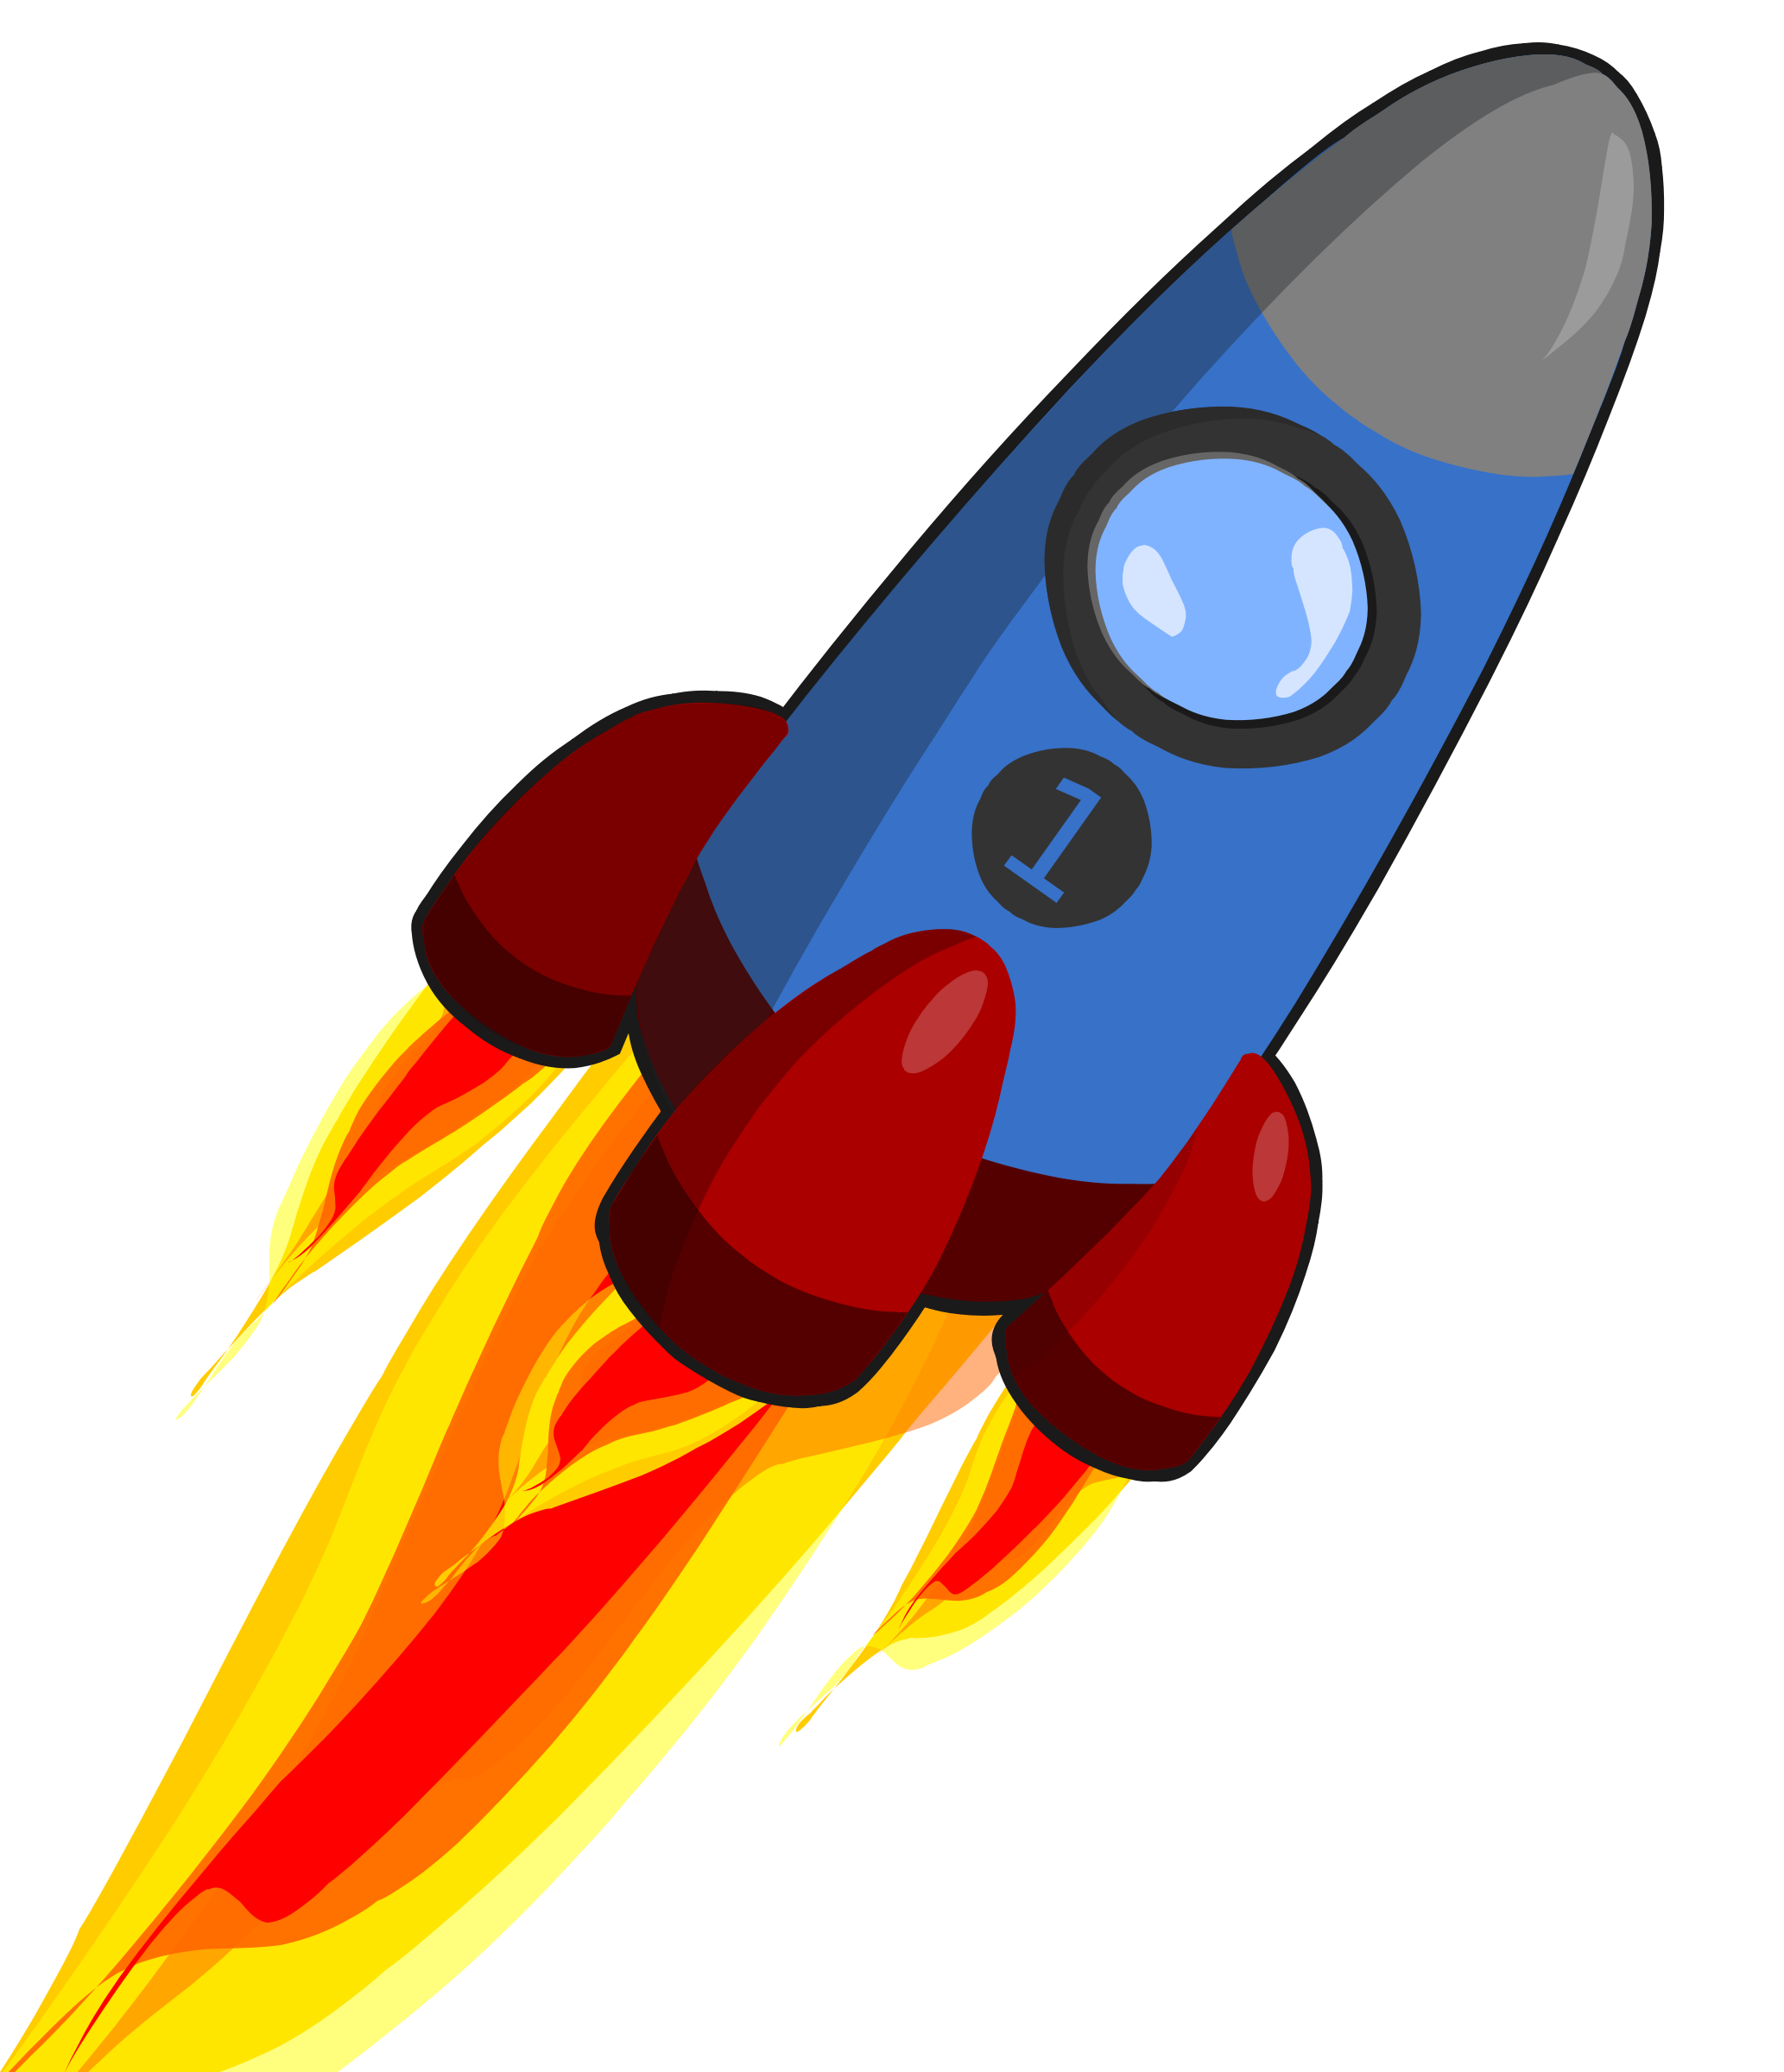 Free Rocket Animated Cliparts, Download Free Clip Art, Free.